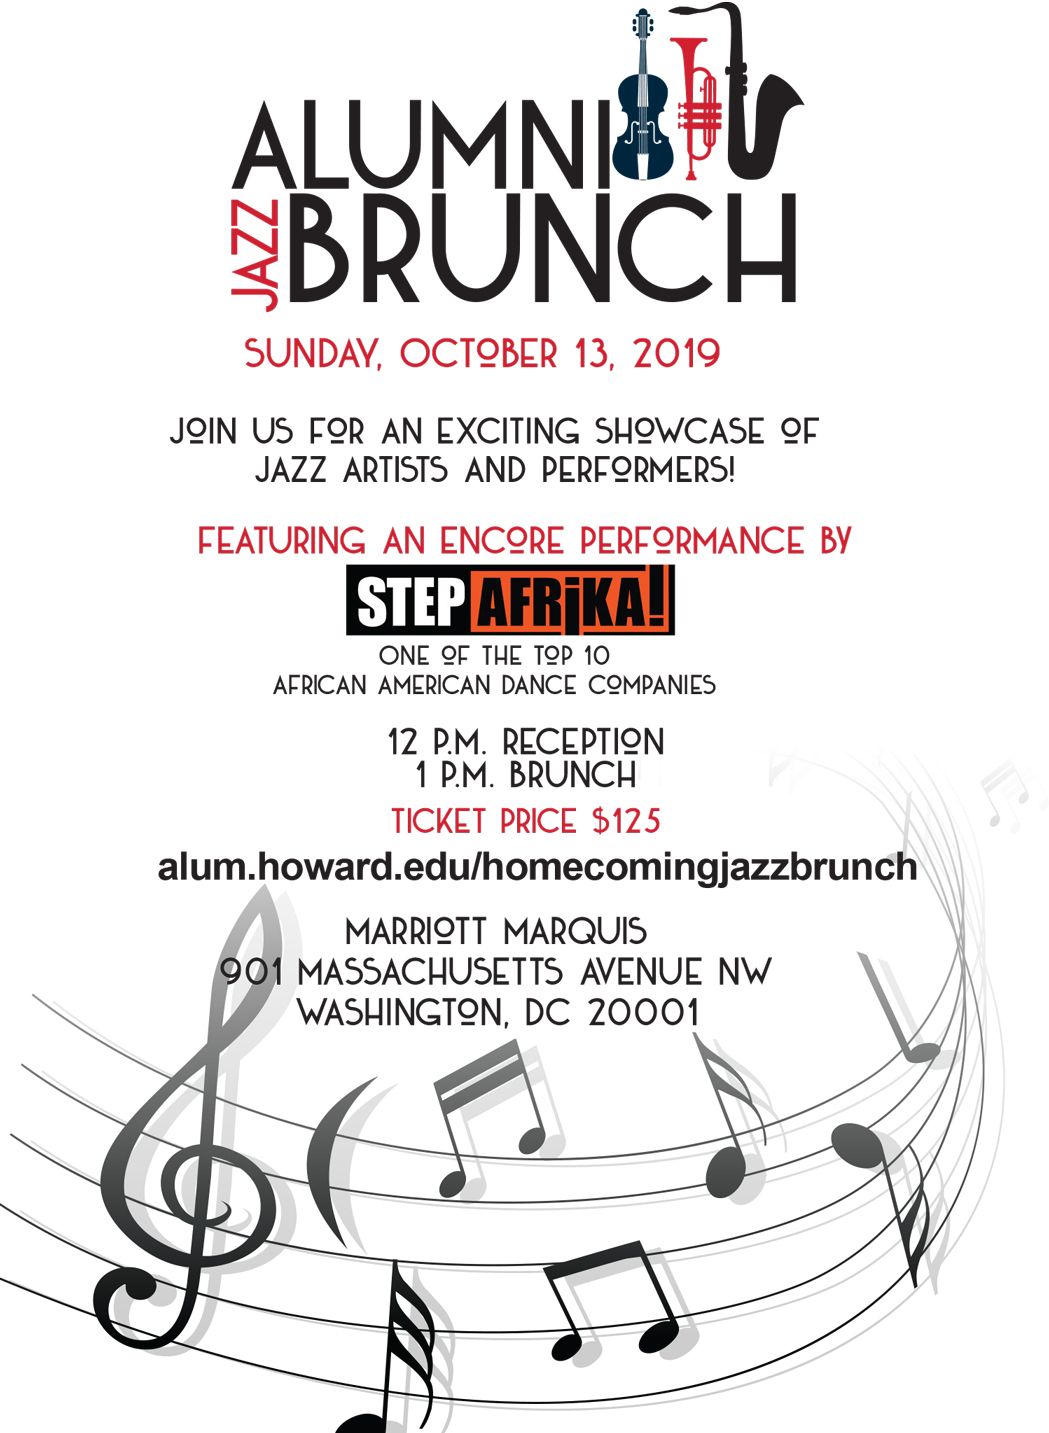 Registration for the 2019 Homecoming Alumni Jazz Brunch